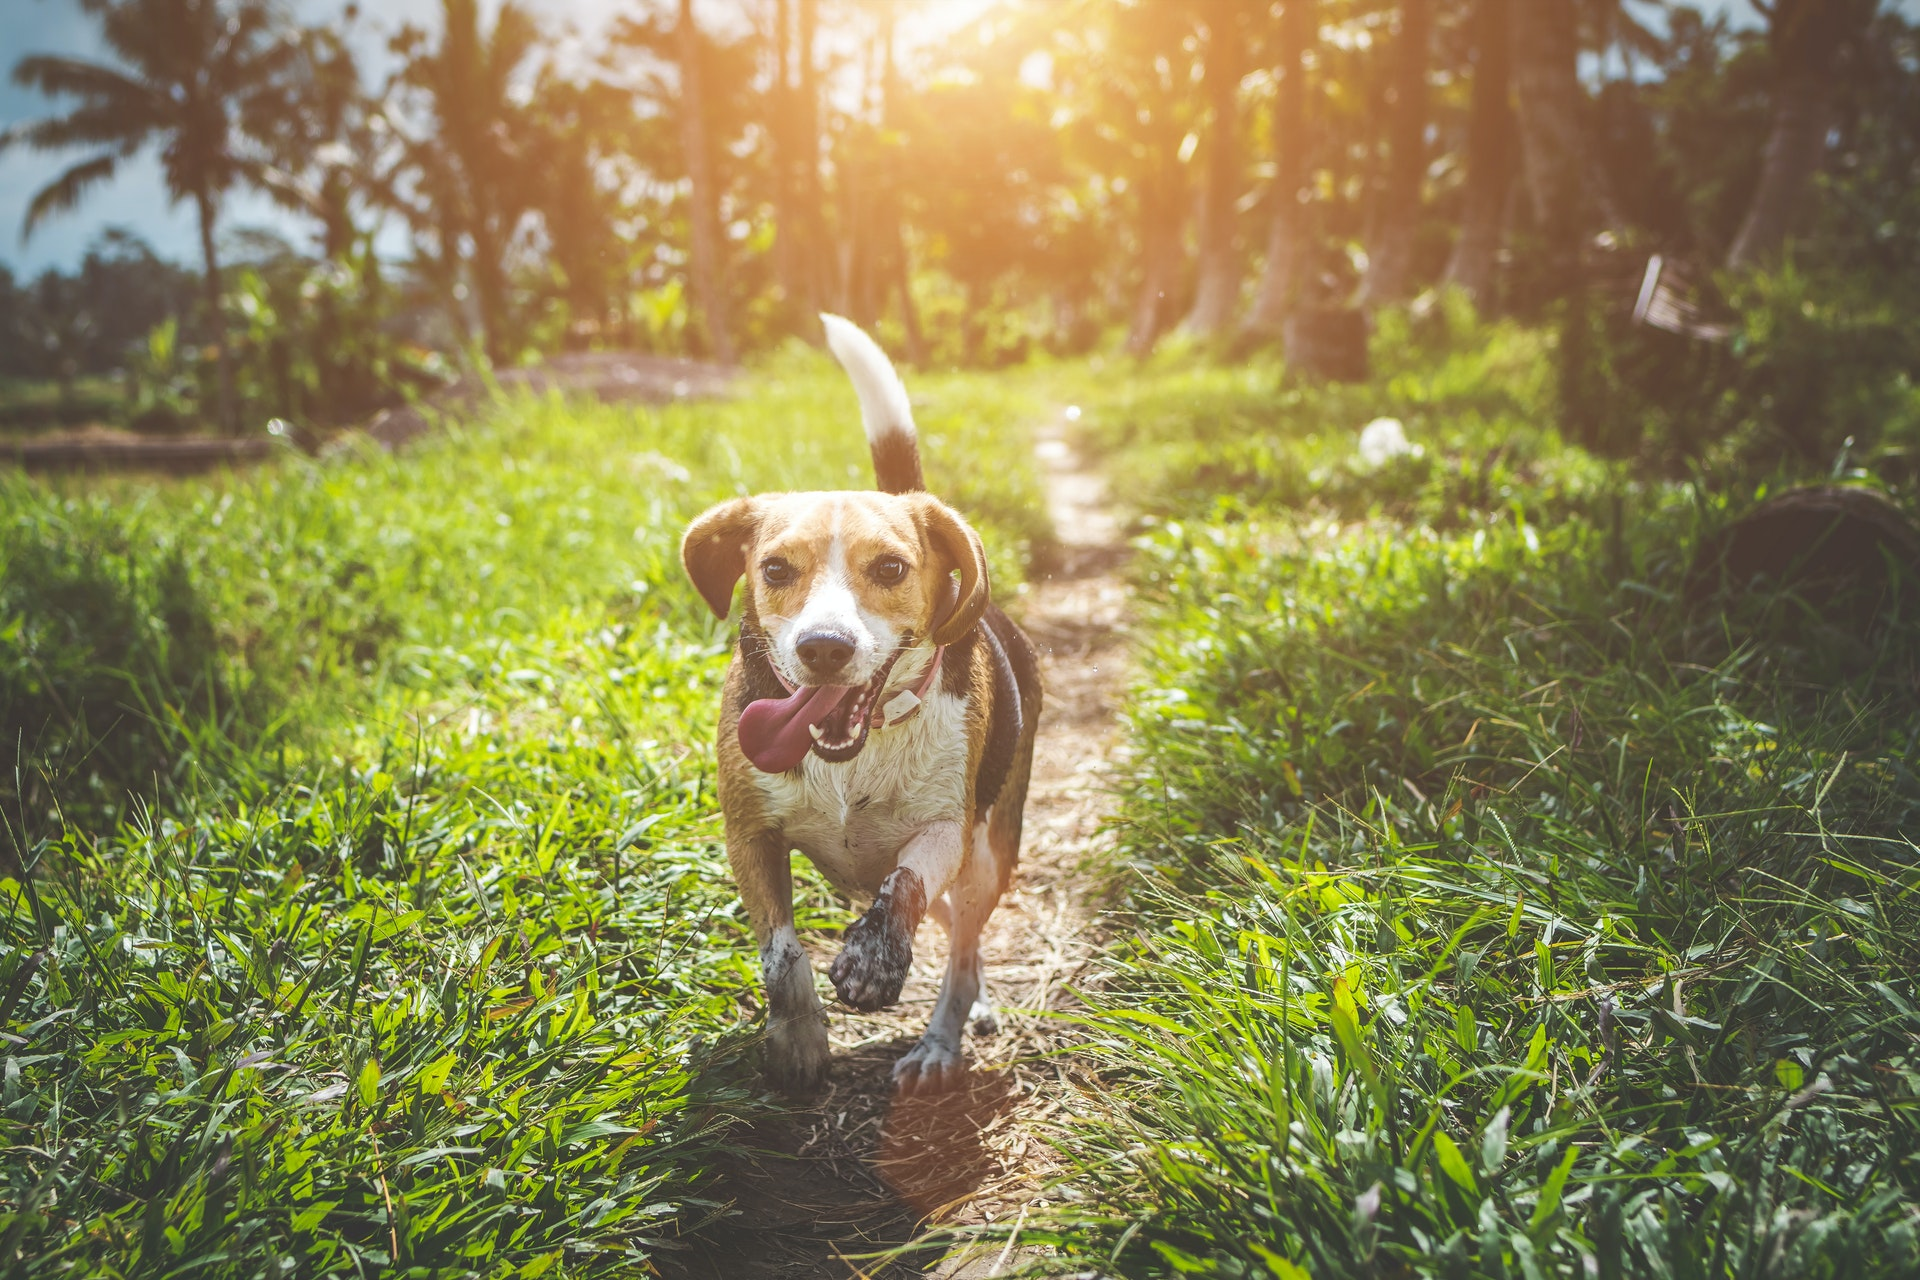 Using vitamin E for dogs can improve the texture of a dog's coat and skin, can improve a dog's immune system, and can reduce...